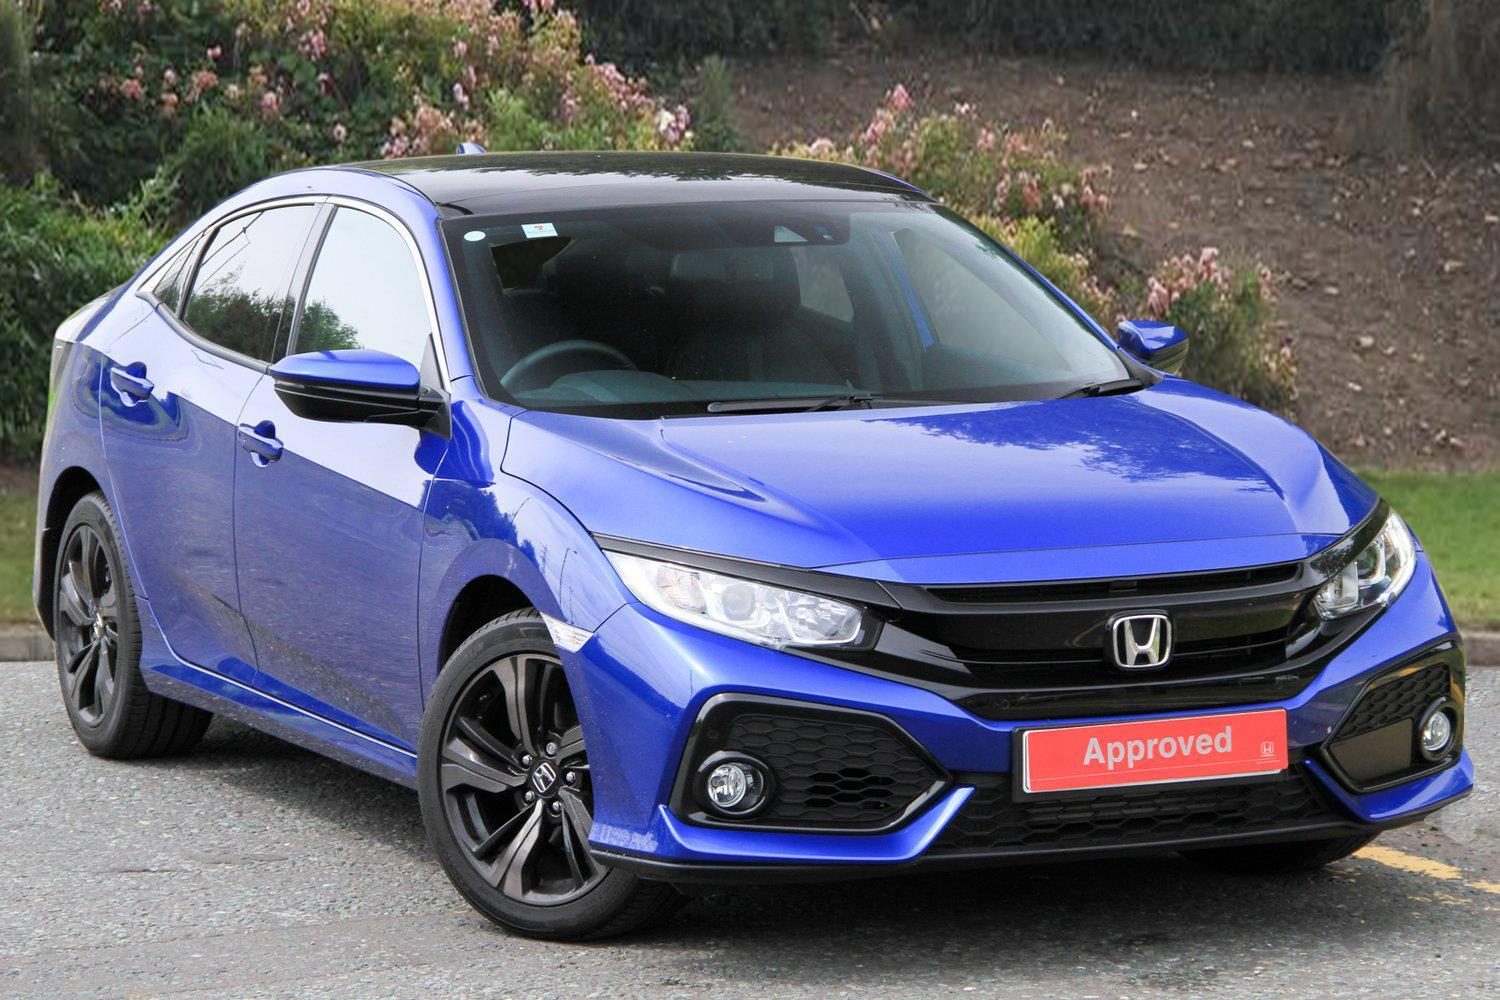 used honda civic 1 0 vtec turbo ex 5dr petrol hatchback. Black Bedroom Furniture Sets. Home Design Ideas